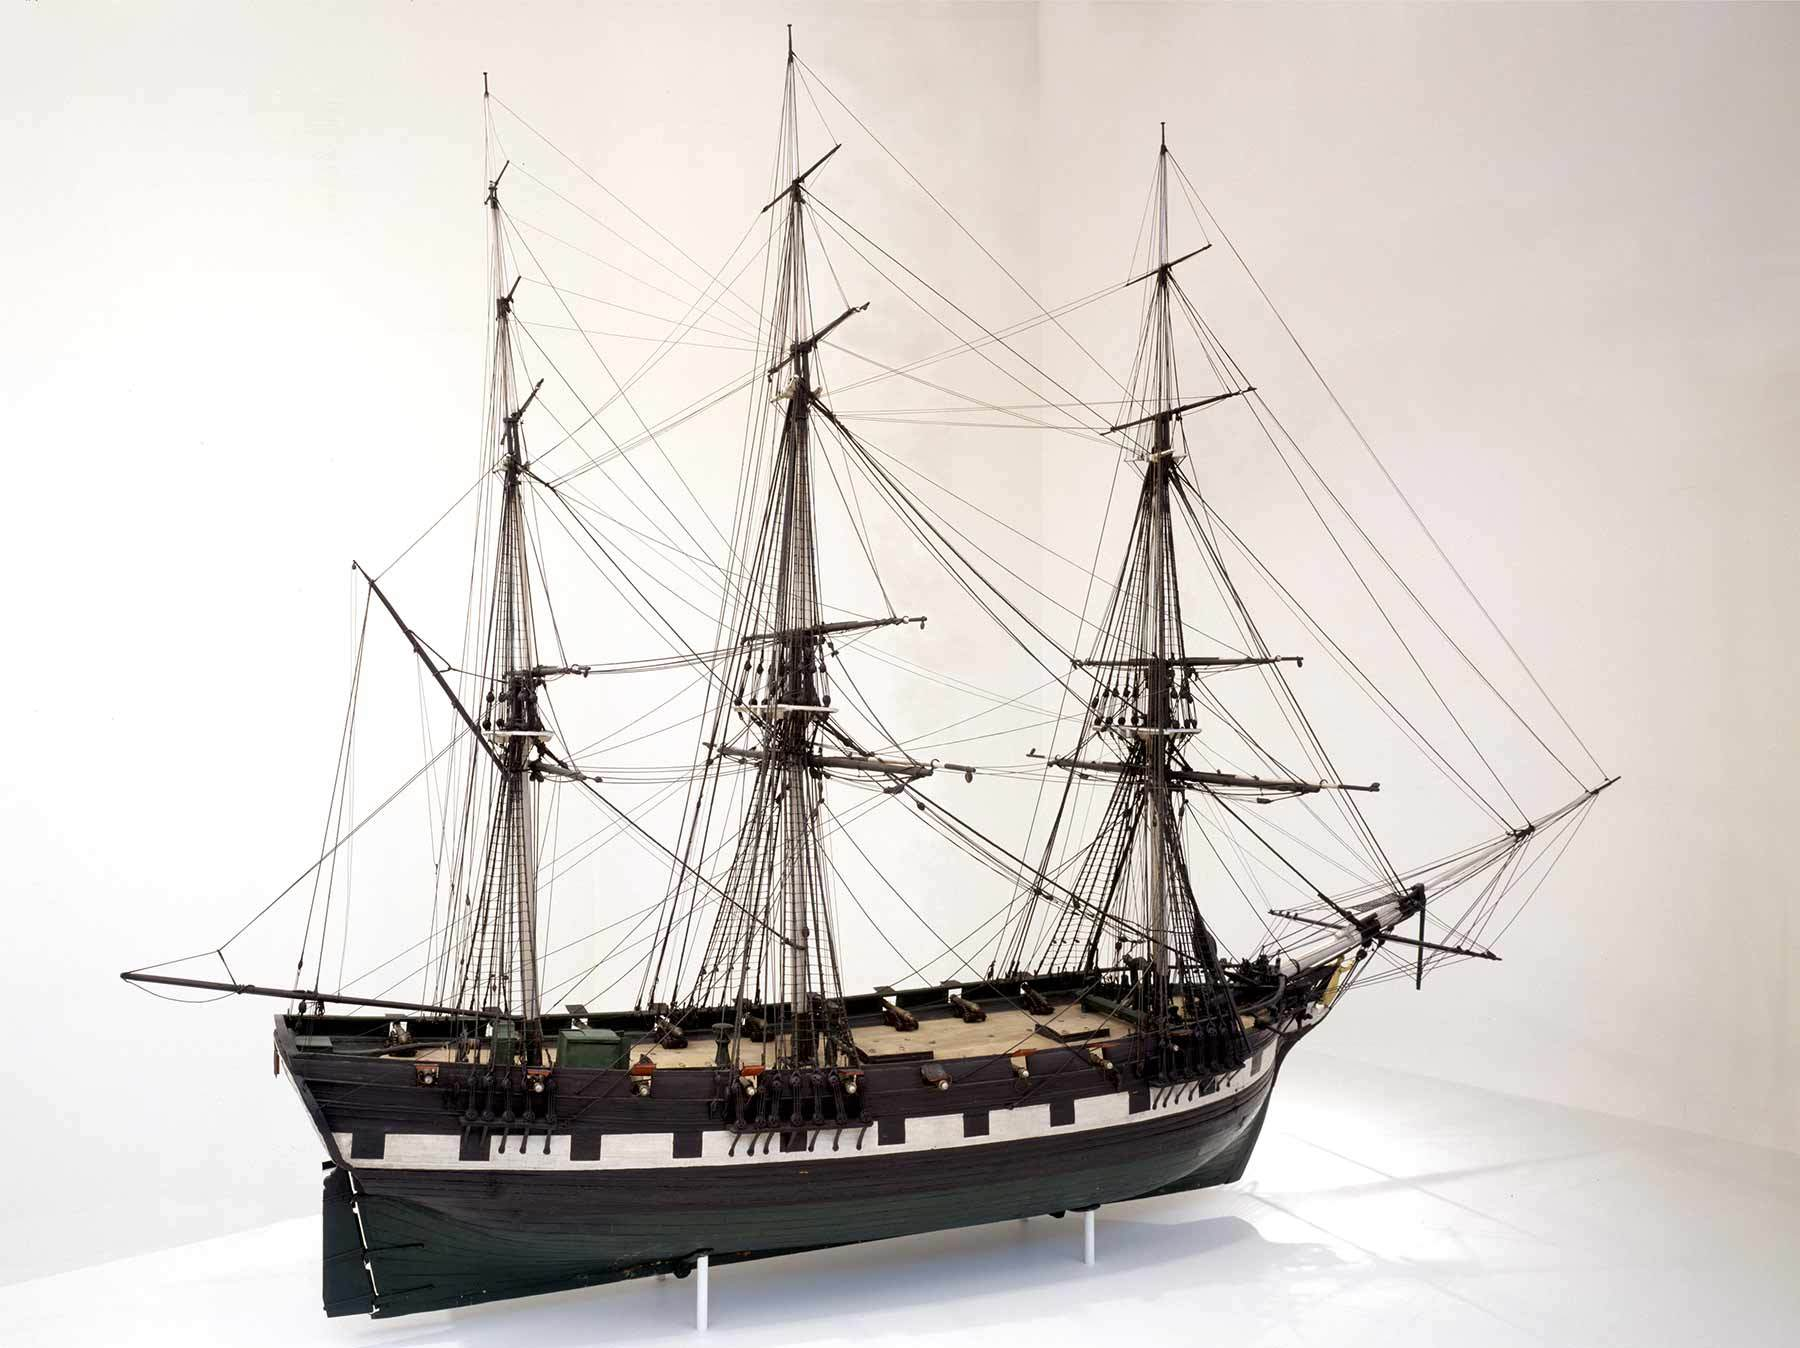 United States Model of the 1797 ship Friendship, about 1804